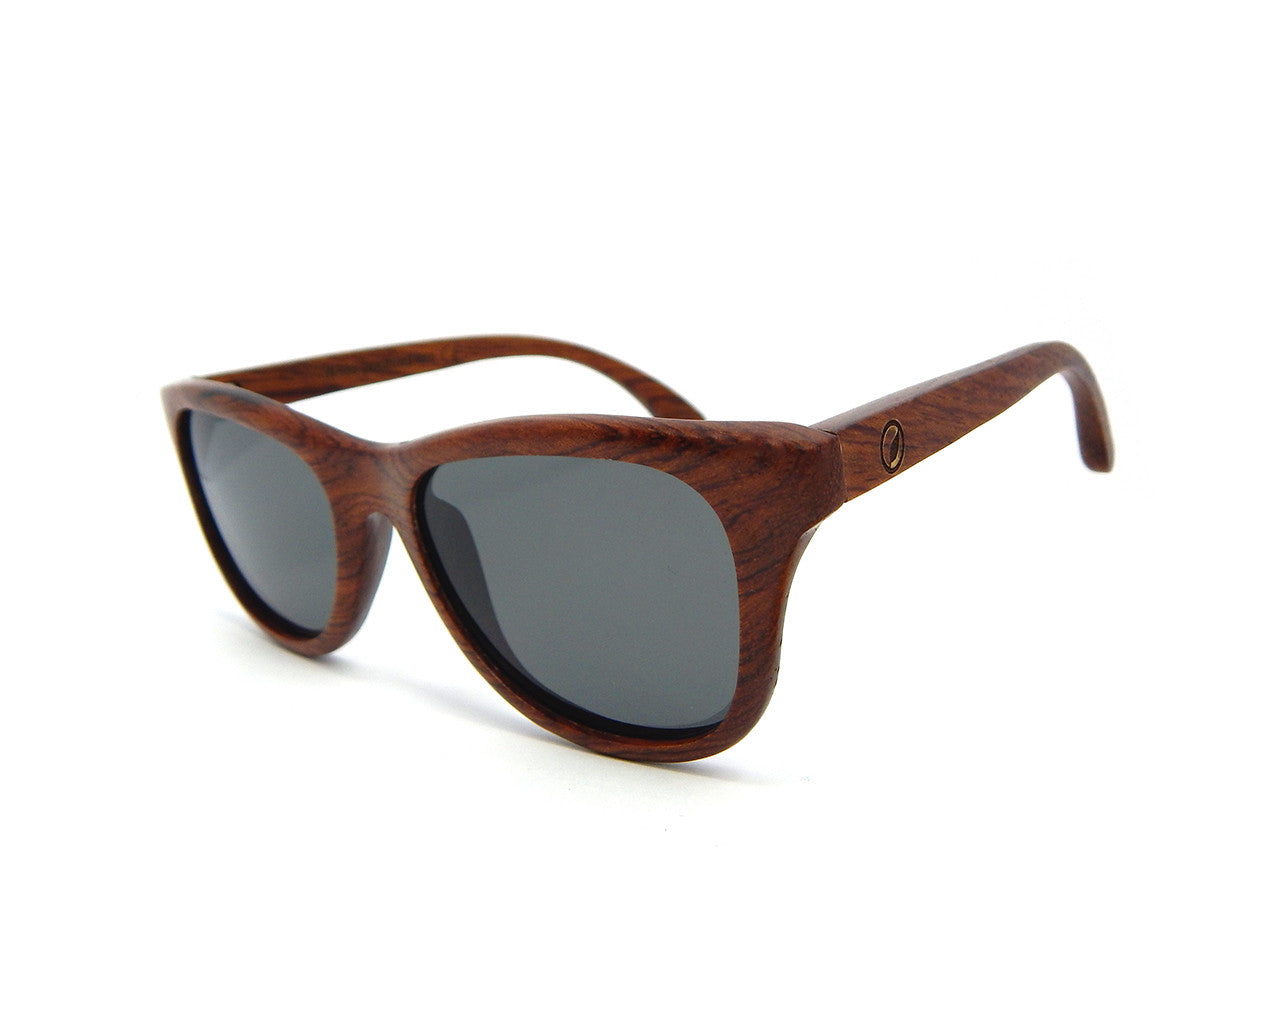 Rosewood Sunglasses RSB-01 - Natural Clothes Bamboo Clothing & Accessories for Men & Women